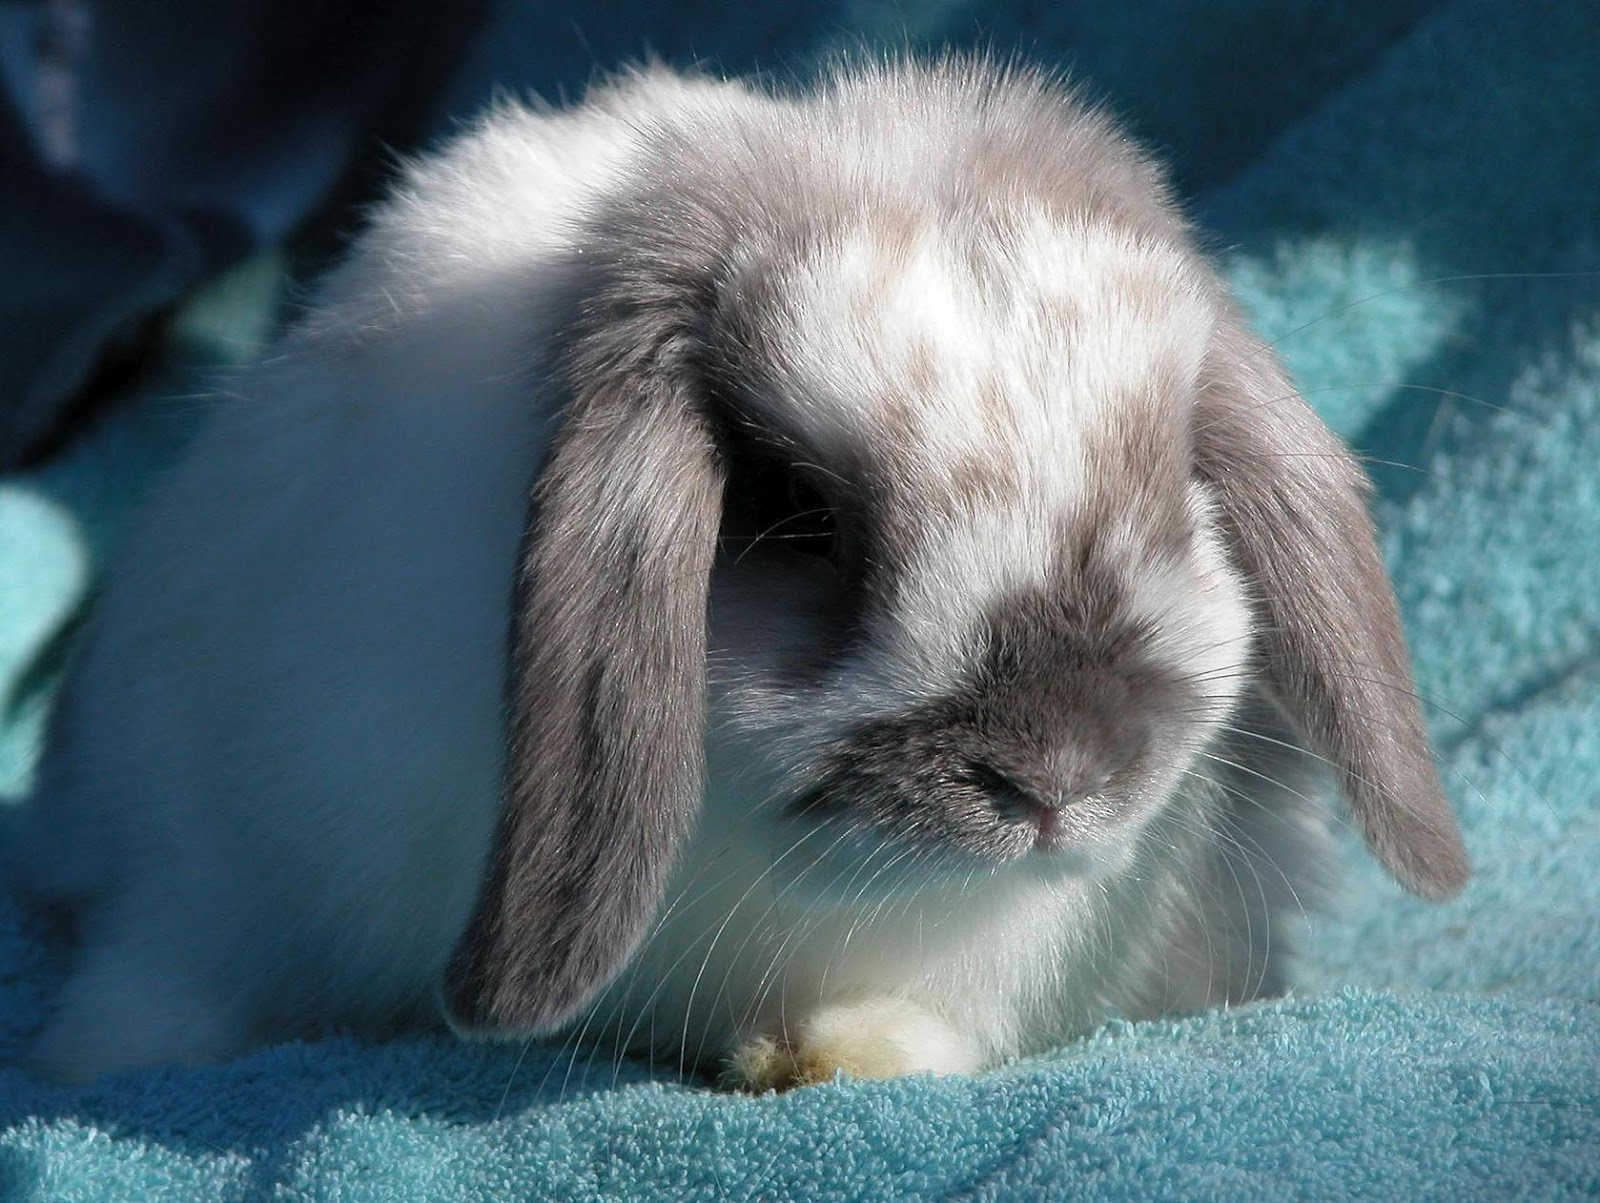 Cute And Funny Wallpapers Free Unique Wallpaper Bunny